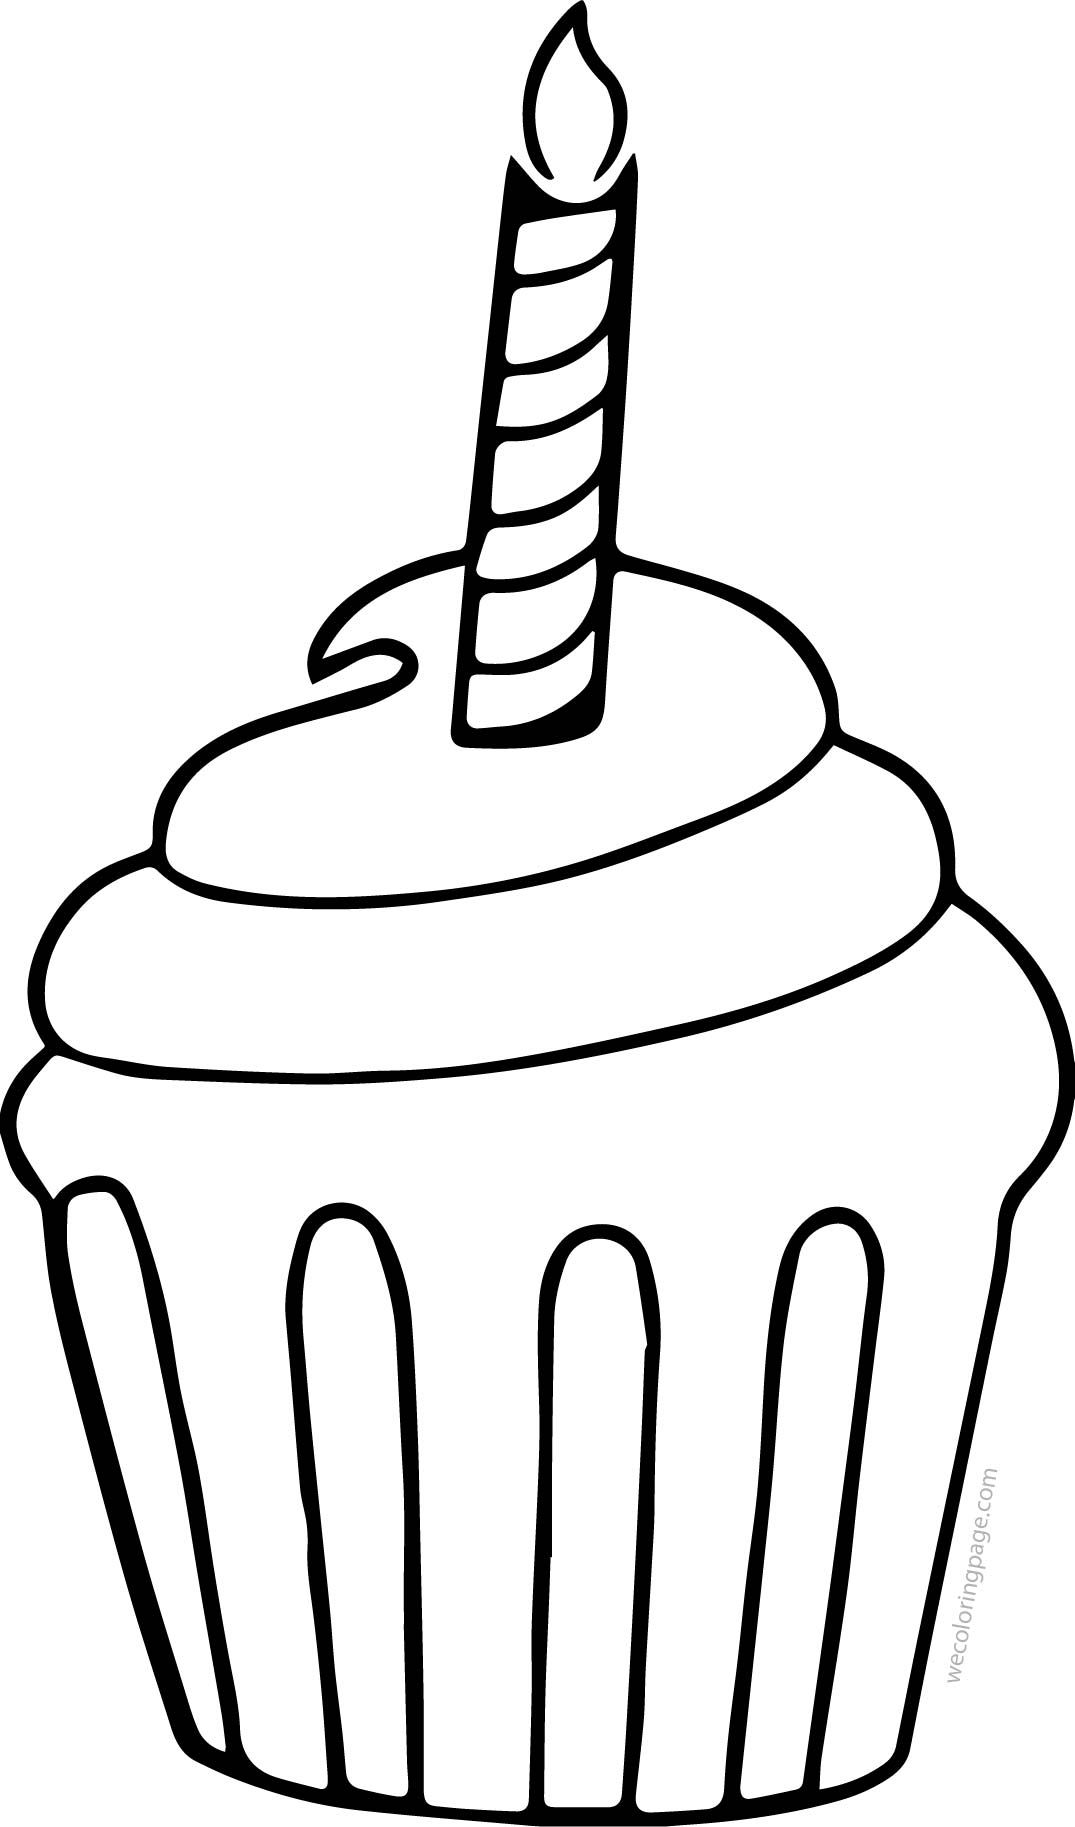 cupcake colouring template cupcake outline cupcake coloring page gclipartcom template cupcake colouring